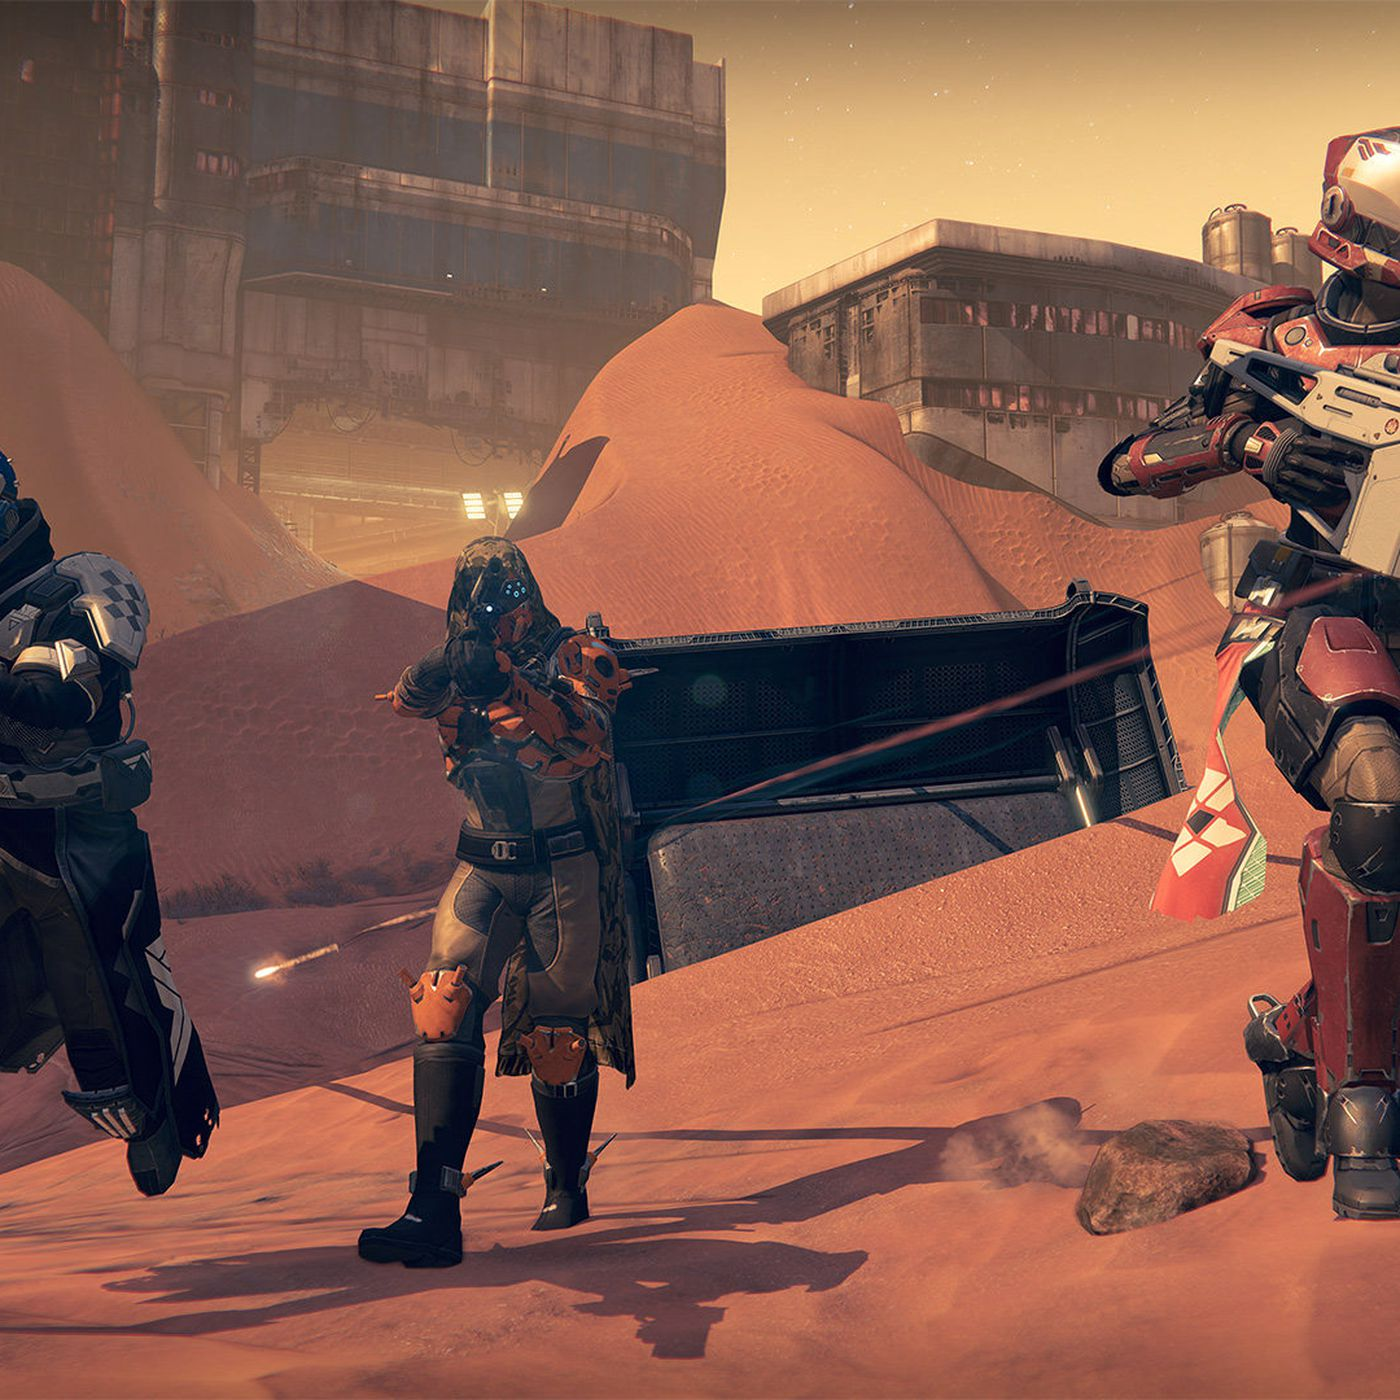 What's exclusive to the PlayStation versions of Destiny